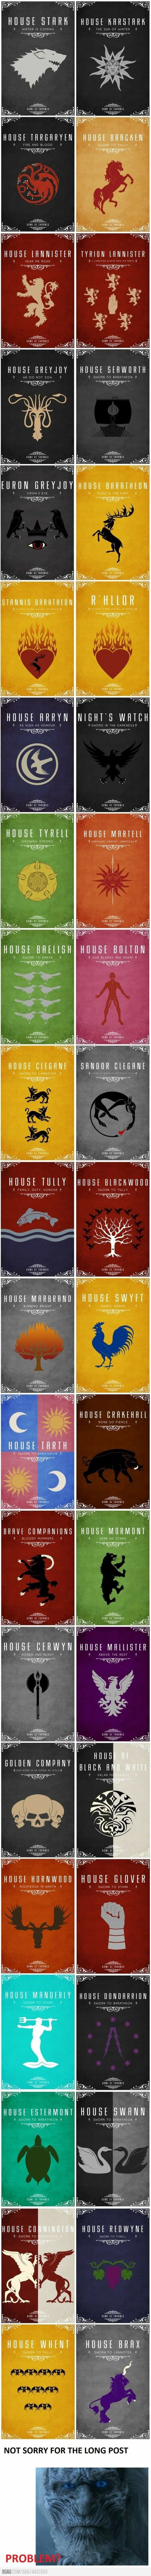 All the Houses in Game Of Thrones...